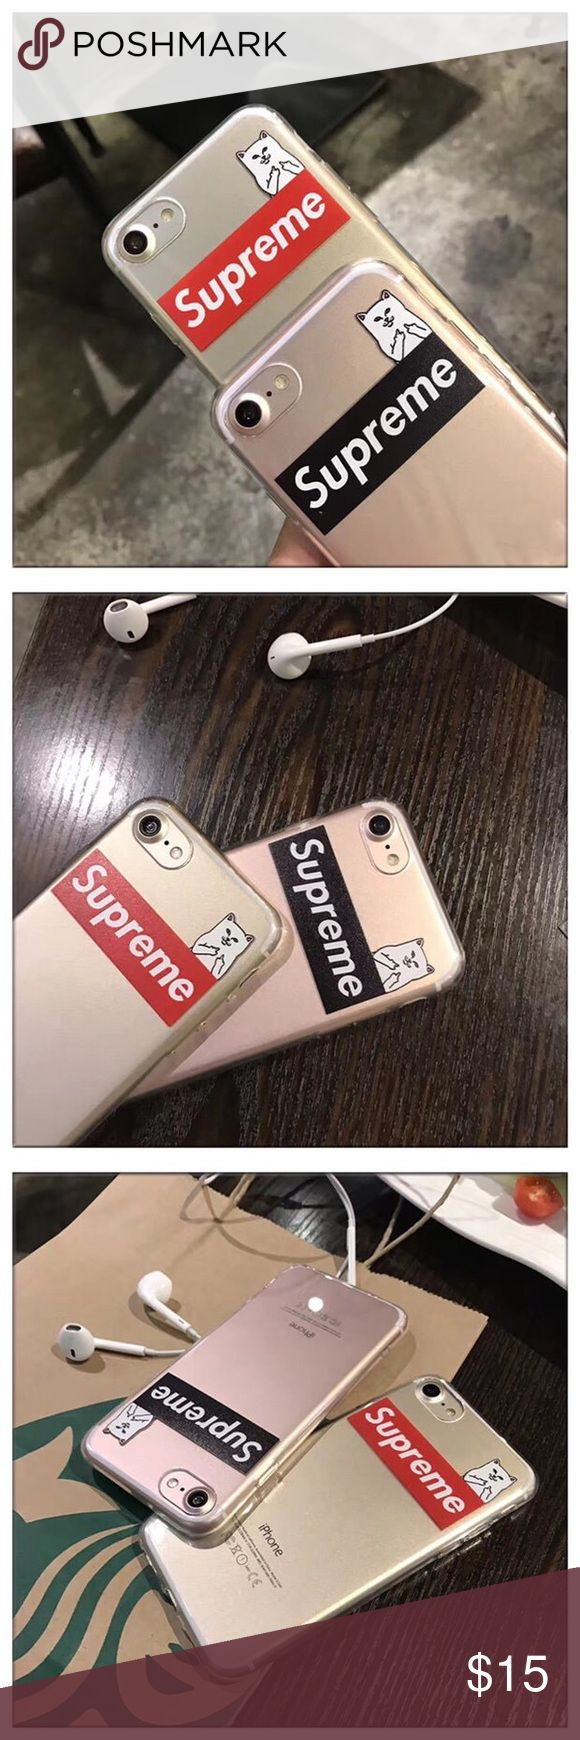 Supreme x RIPNDIP iPhone 7 plus soft phone case jelly soft rubber phone case brand new and high quality protect your phone from shock and friction, anti-vibration and prevent breaking precisely cut openings to allow full access to all functions of your iPhone   easy to install and disassemble  match you different style and occasion Supreme Accessories Phone Cases